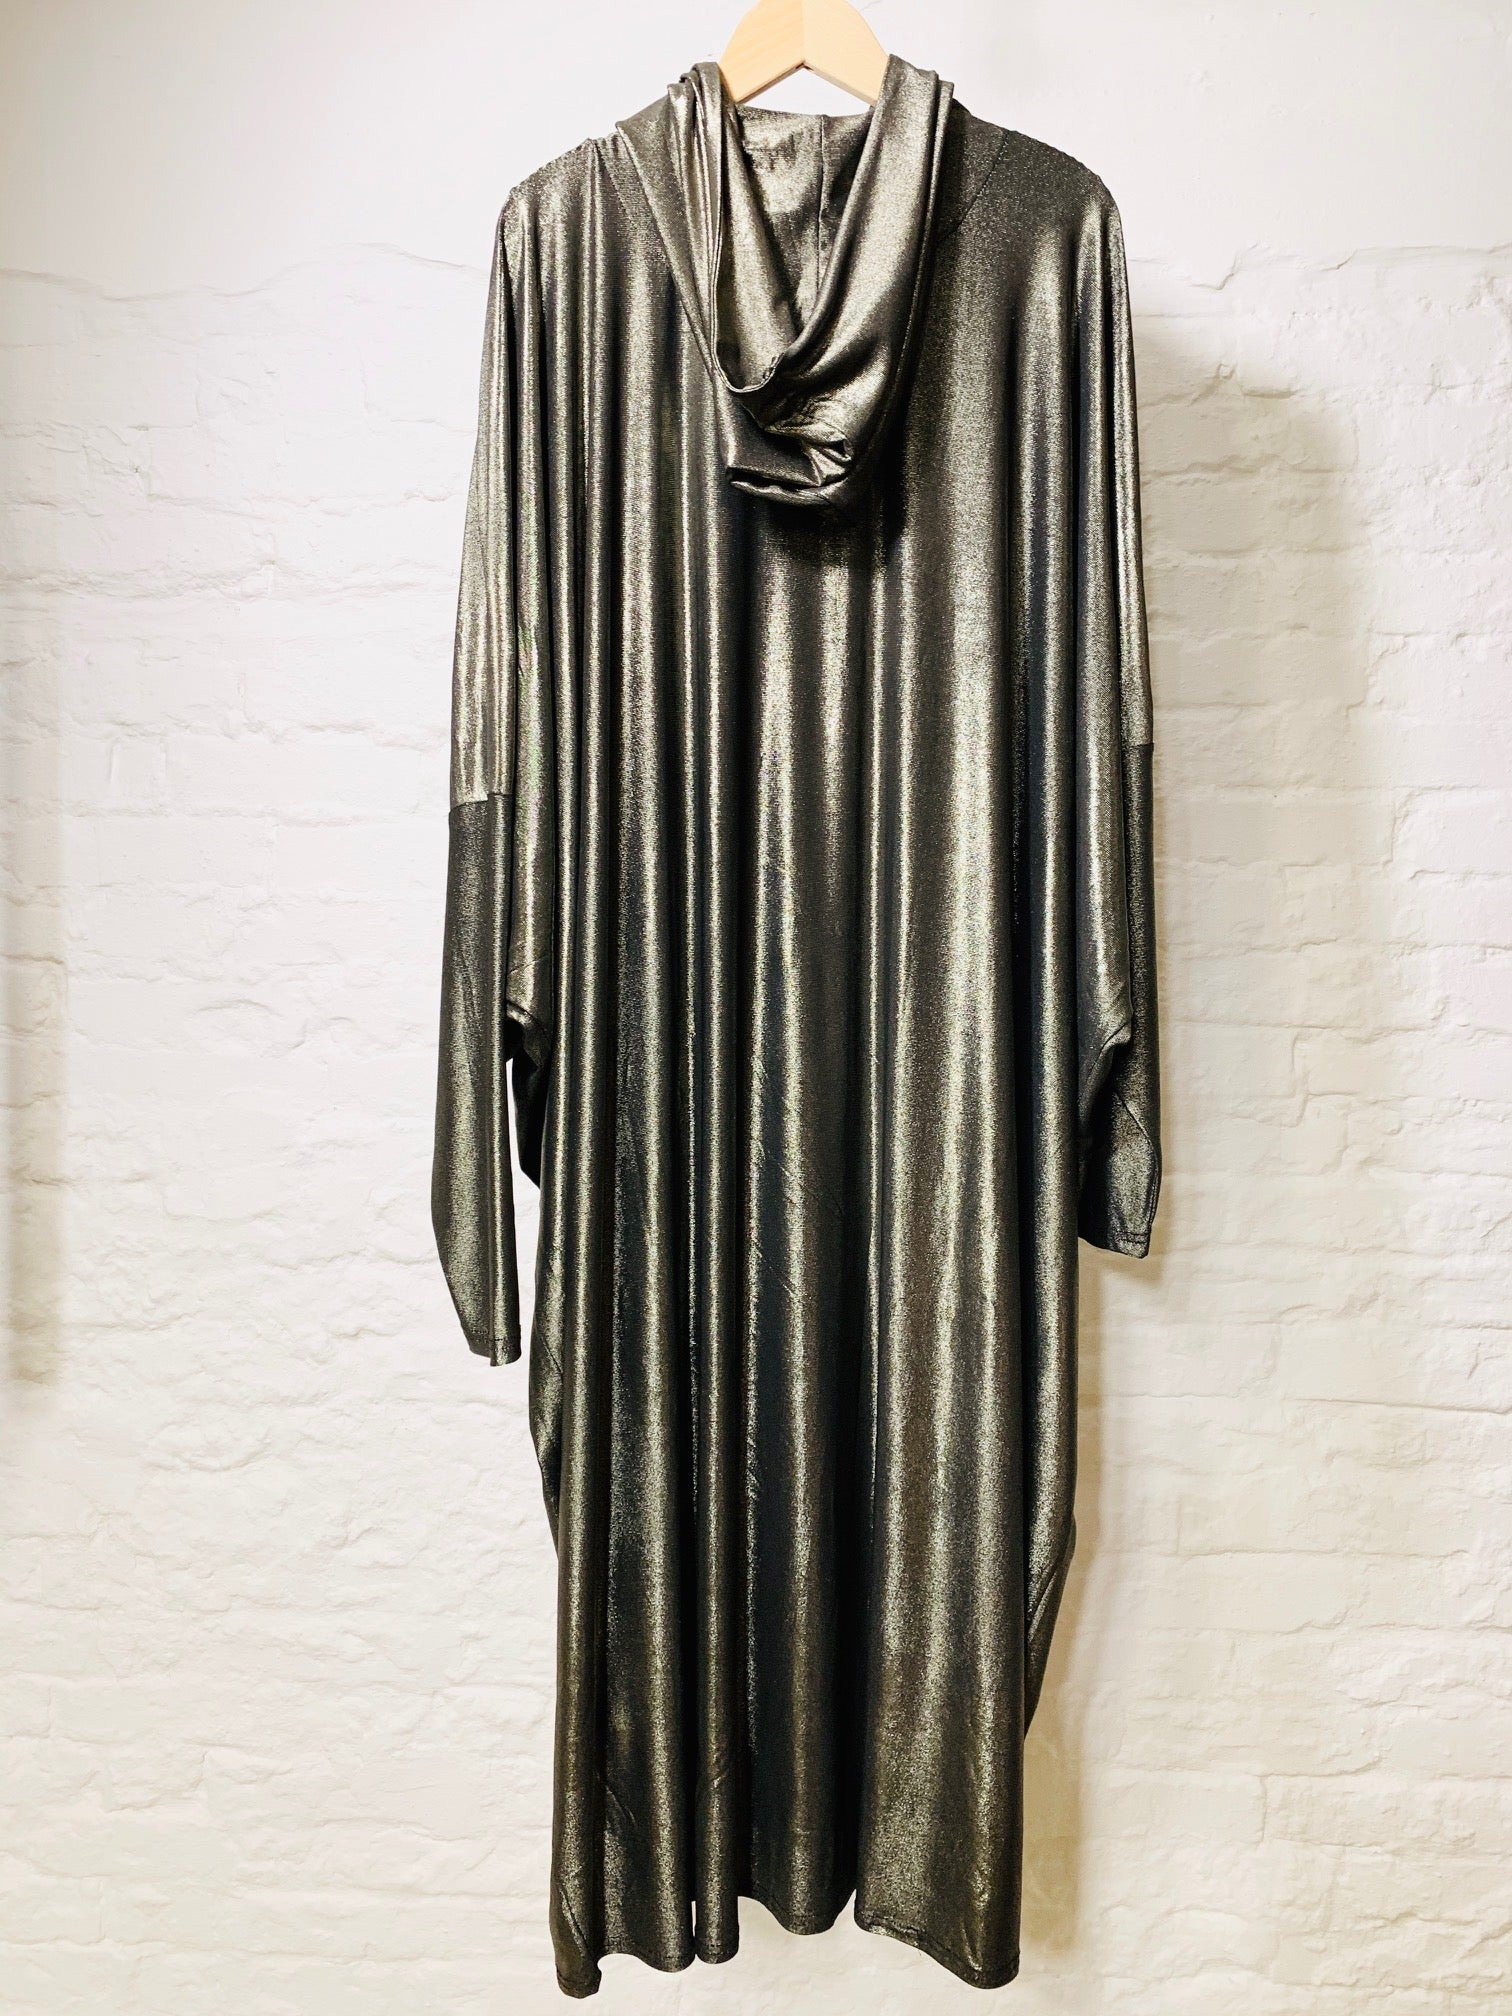 Athena Cape gold sleek